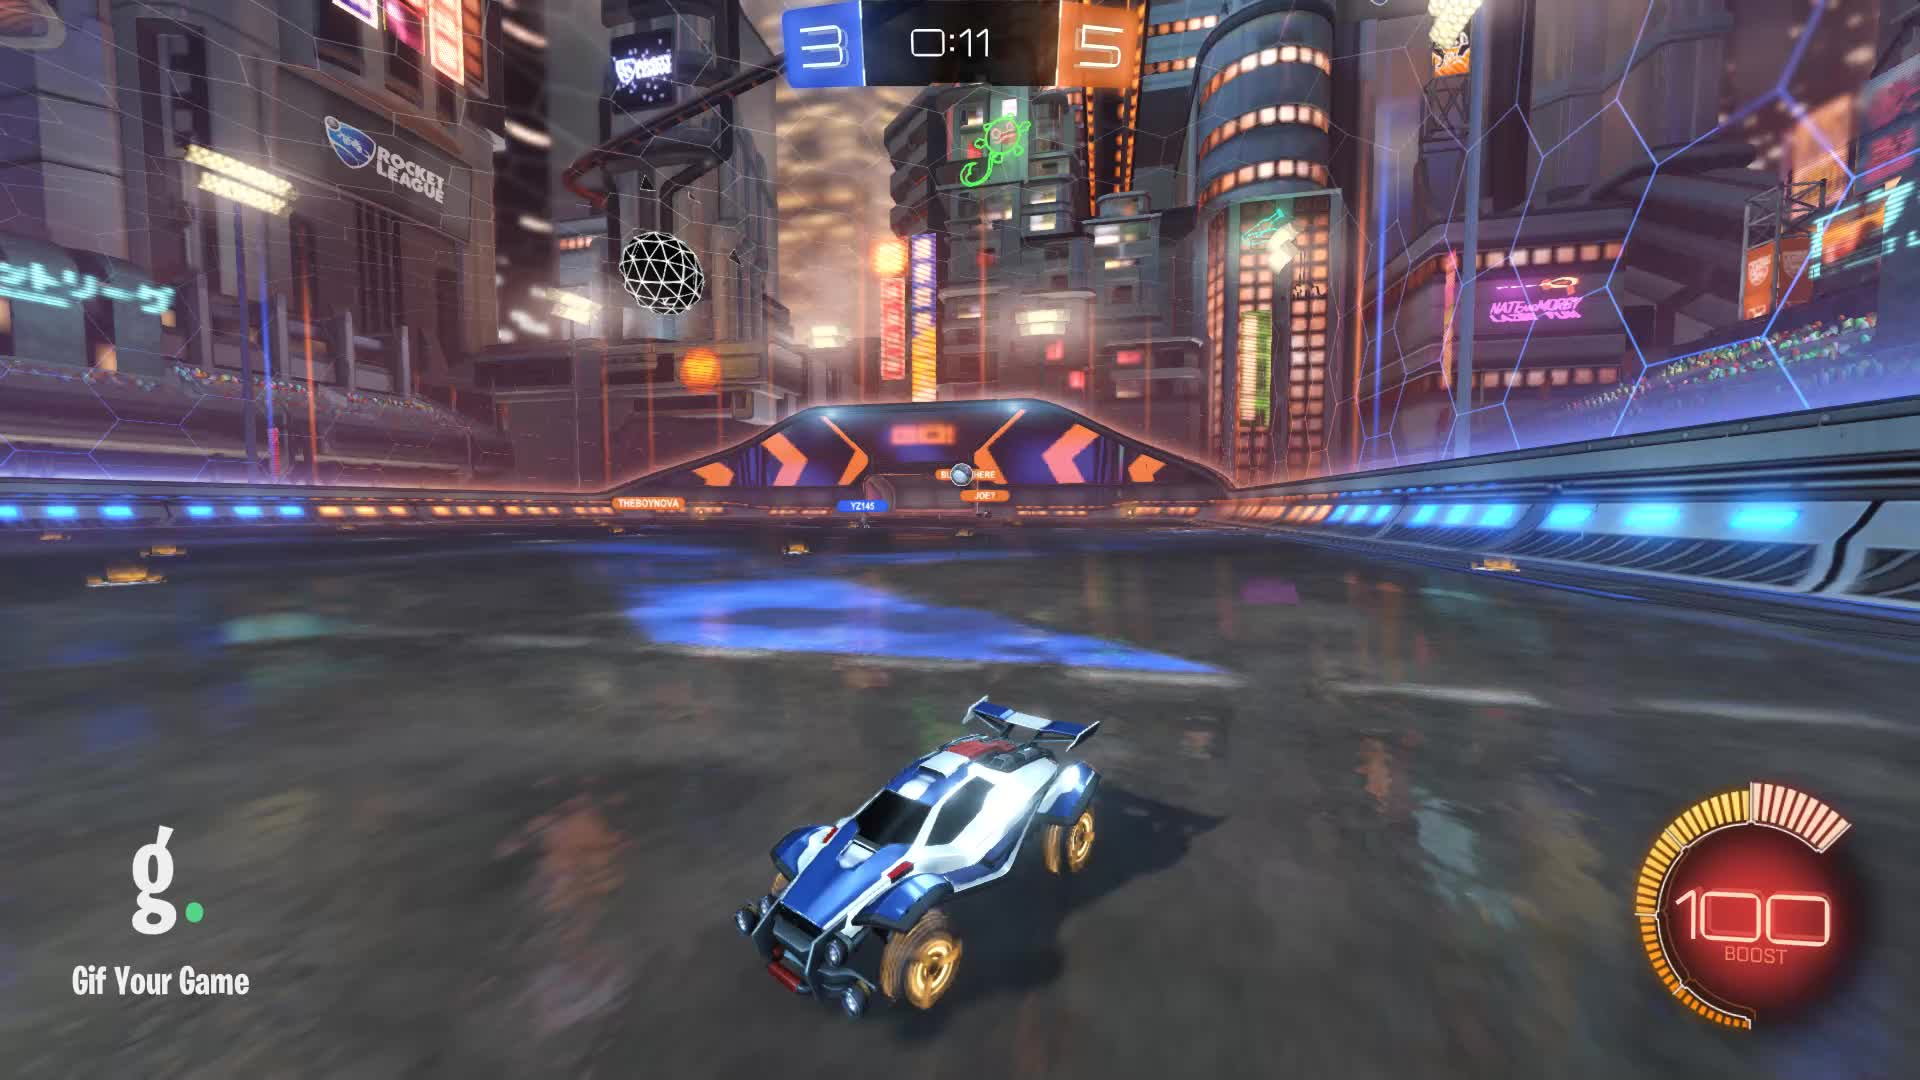 Gif Your Game, GifYourGame, ItWas...Justified, Rocket League, RocketLeague, Save, Save 2: ItWas...Justified GIFs